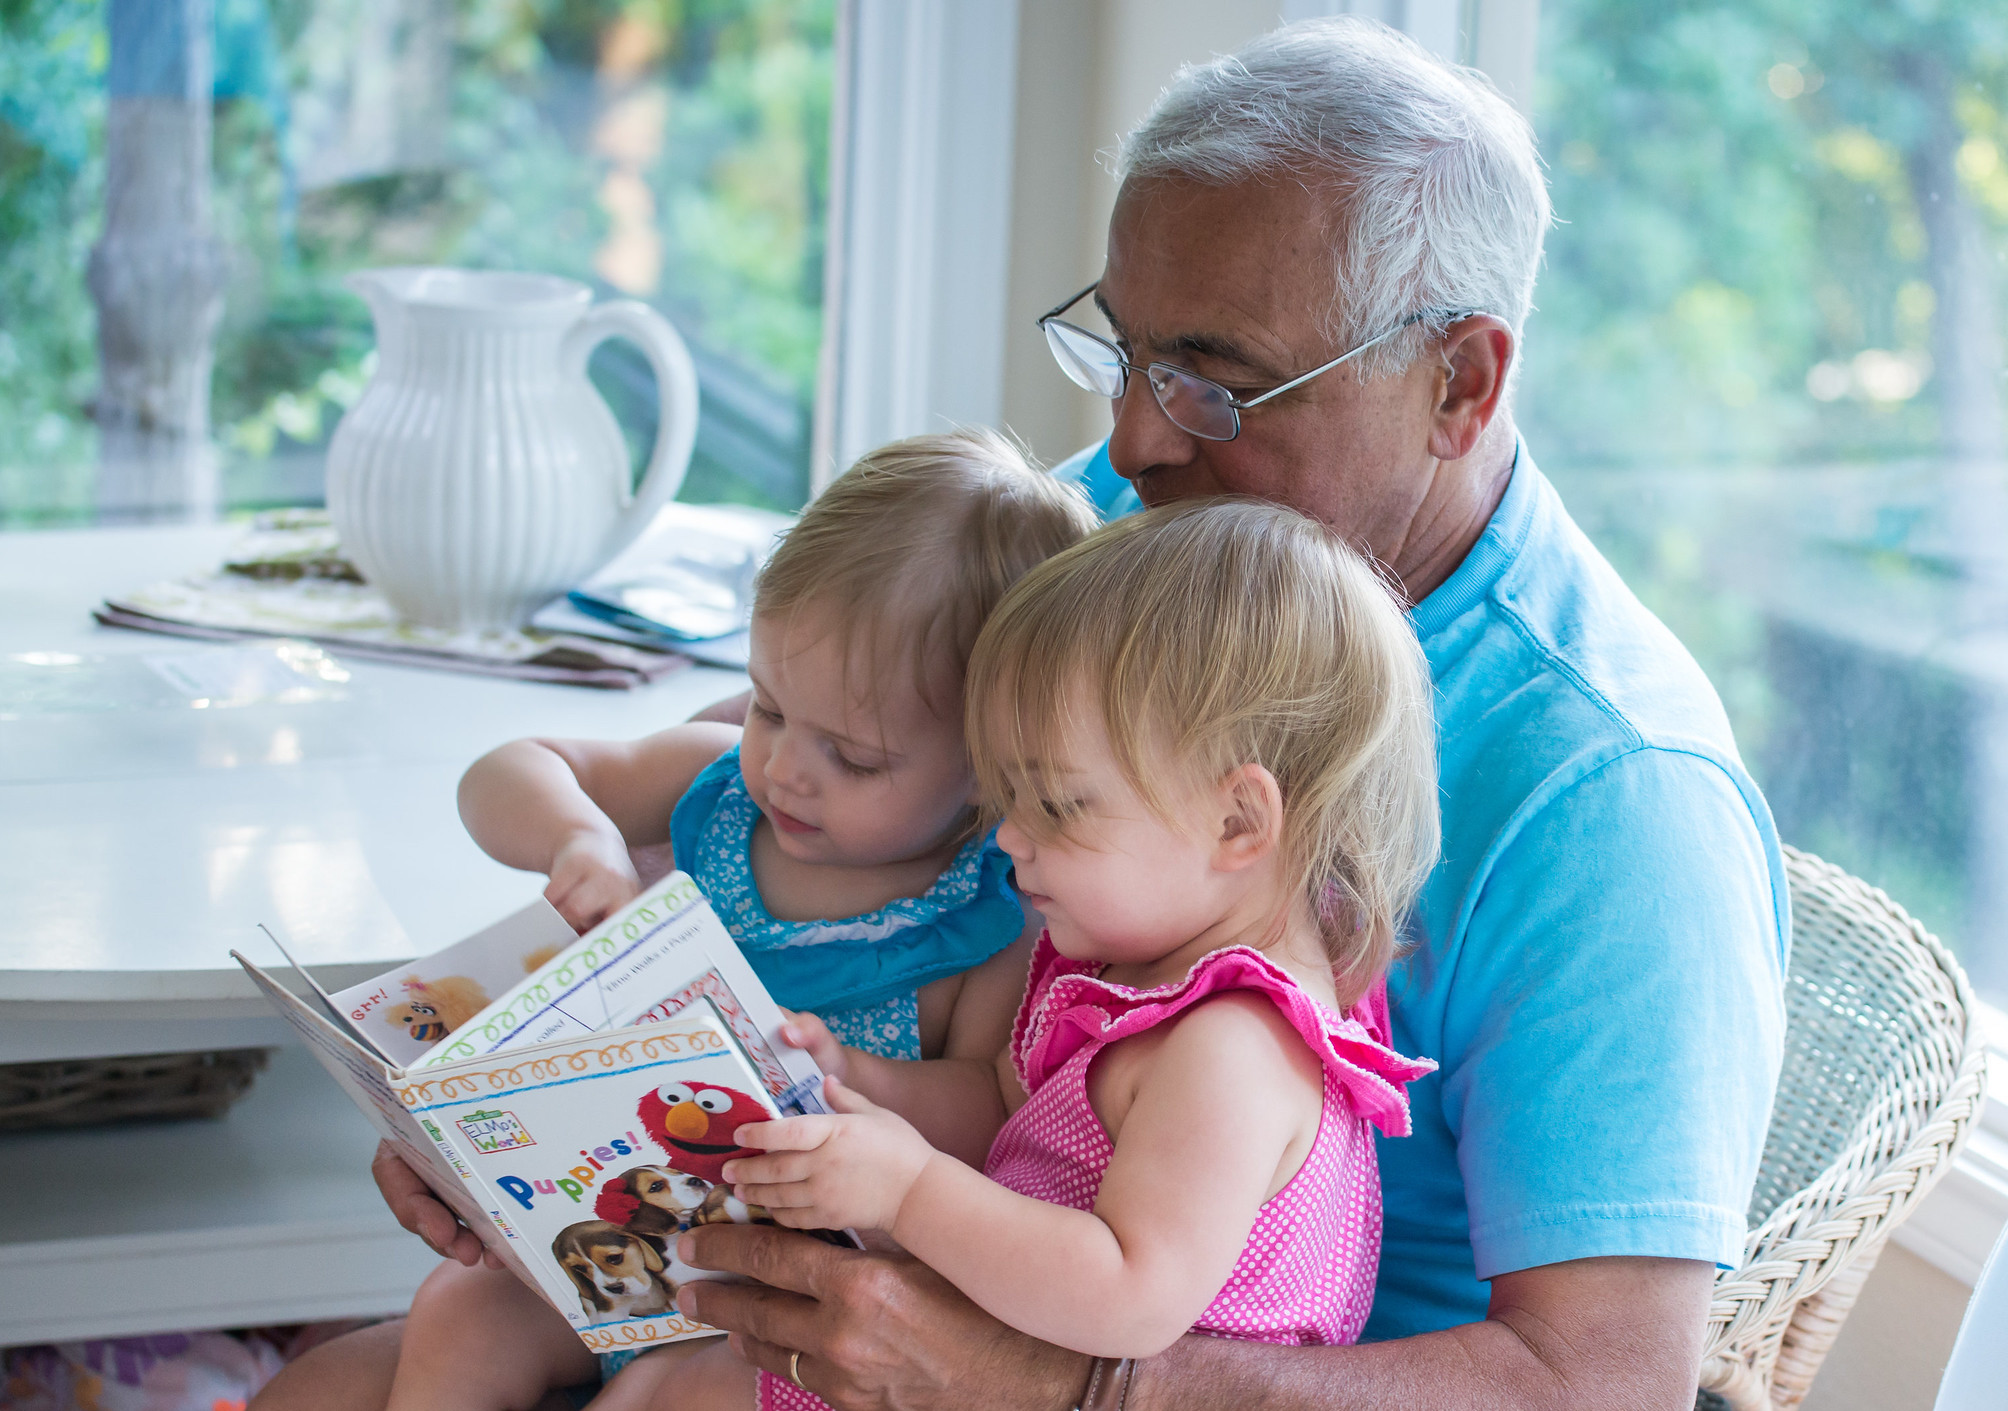 Family services should provide family-level care that includes grandparents and other carers